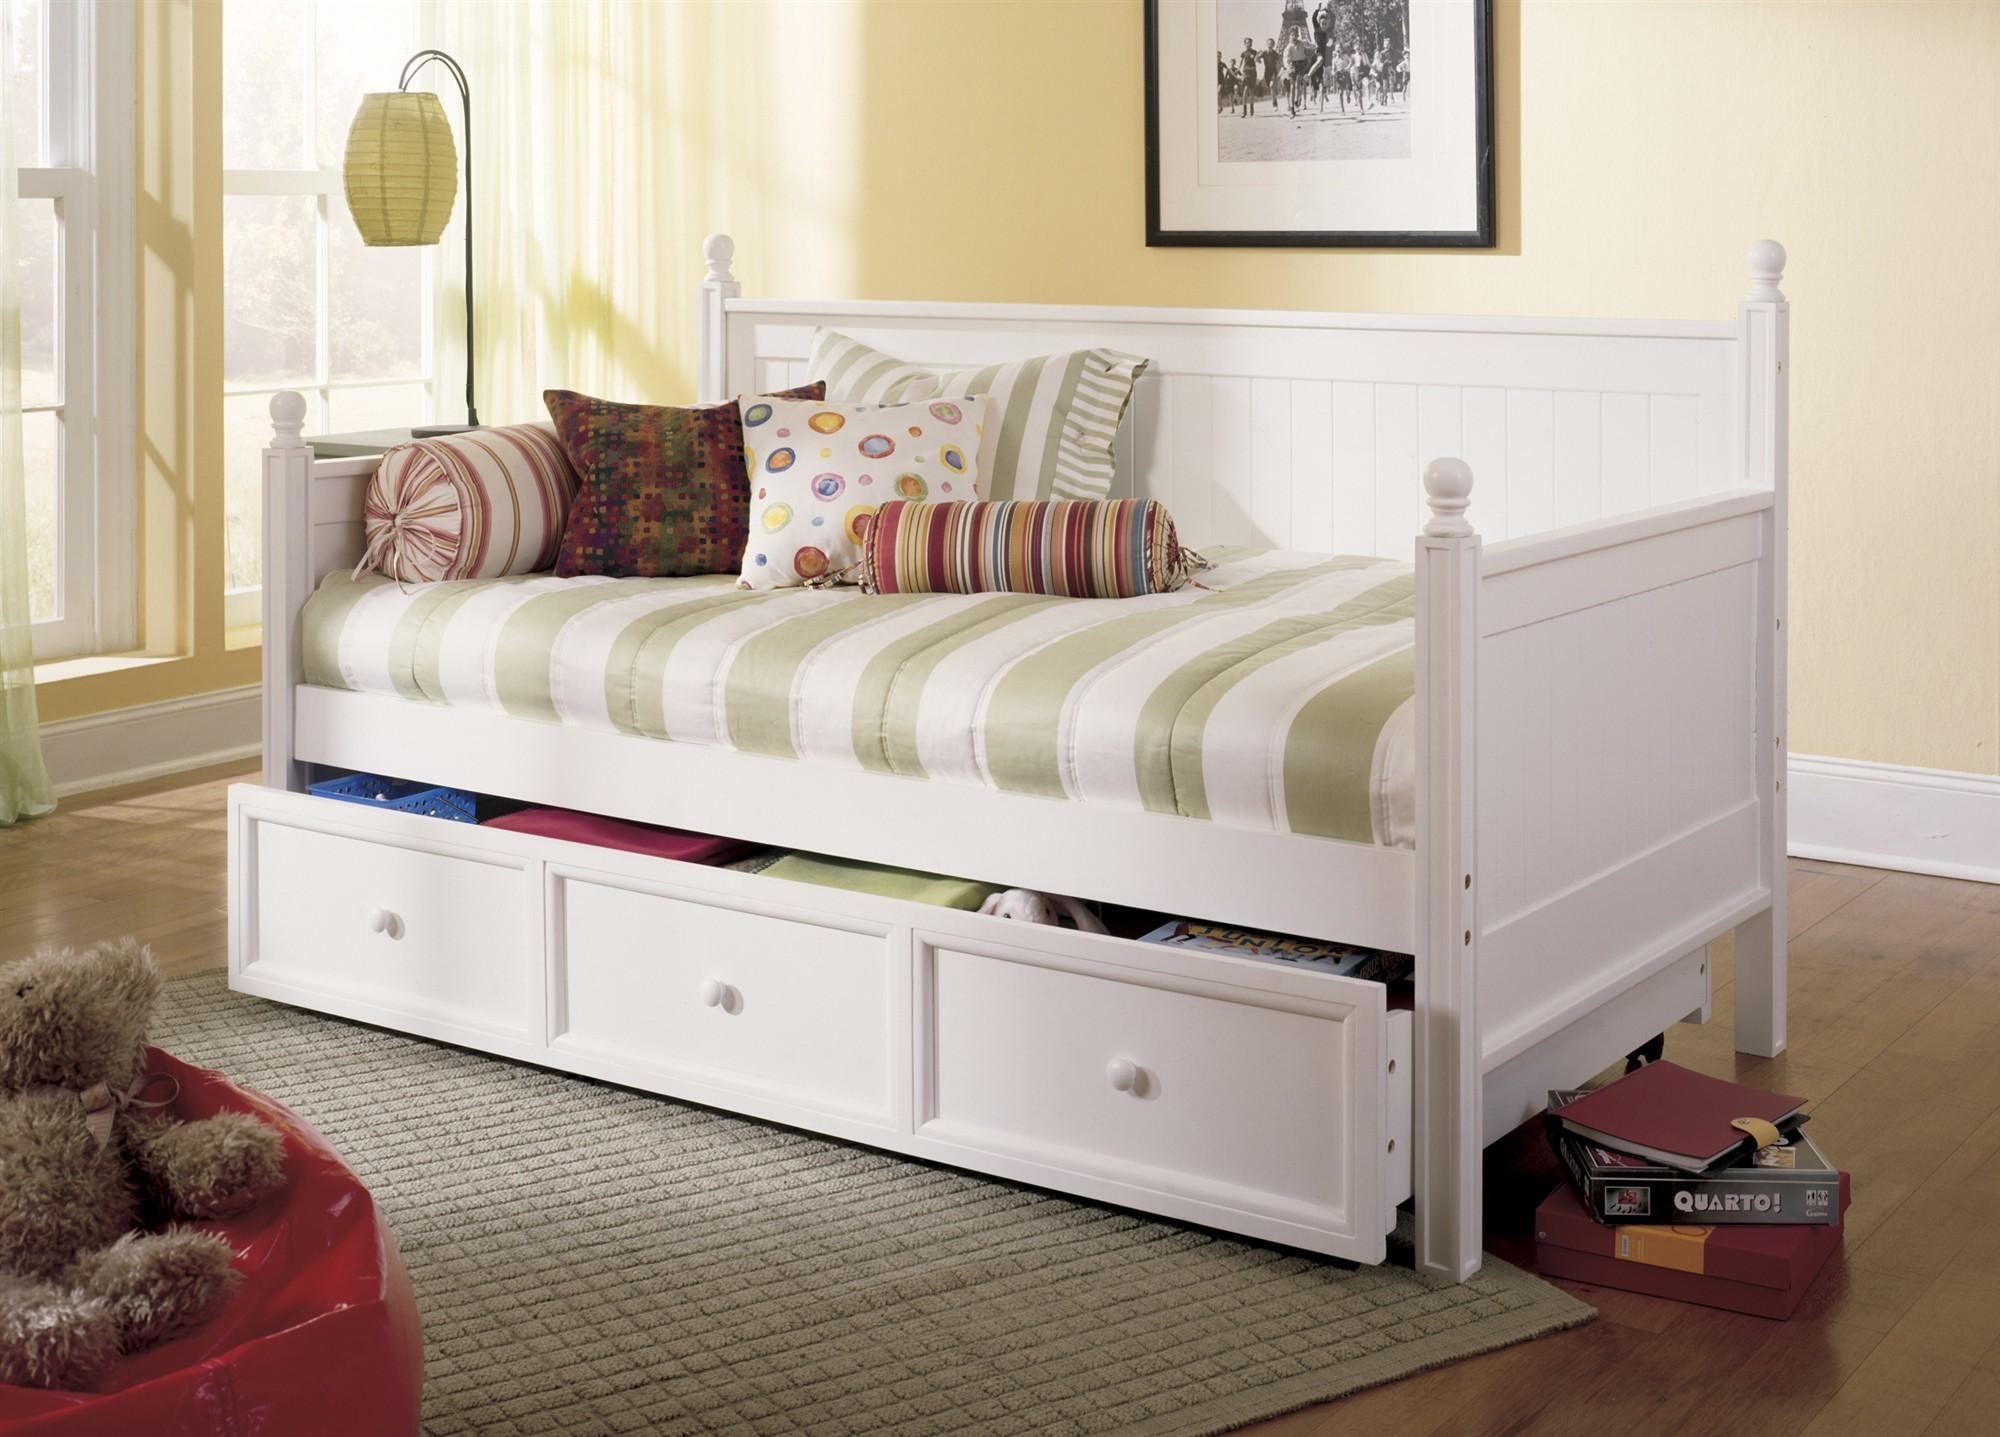 Sofa Bed With Trundle — Loft Bed Design : Bed With Trundle In For Sofa Beds With Trundle (Image 14 of 20)